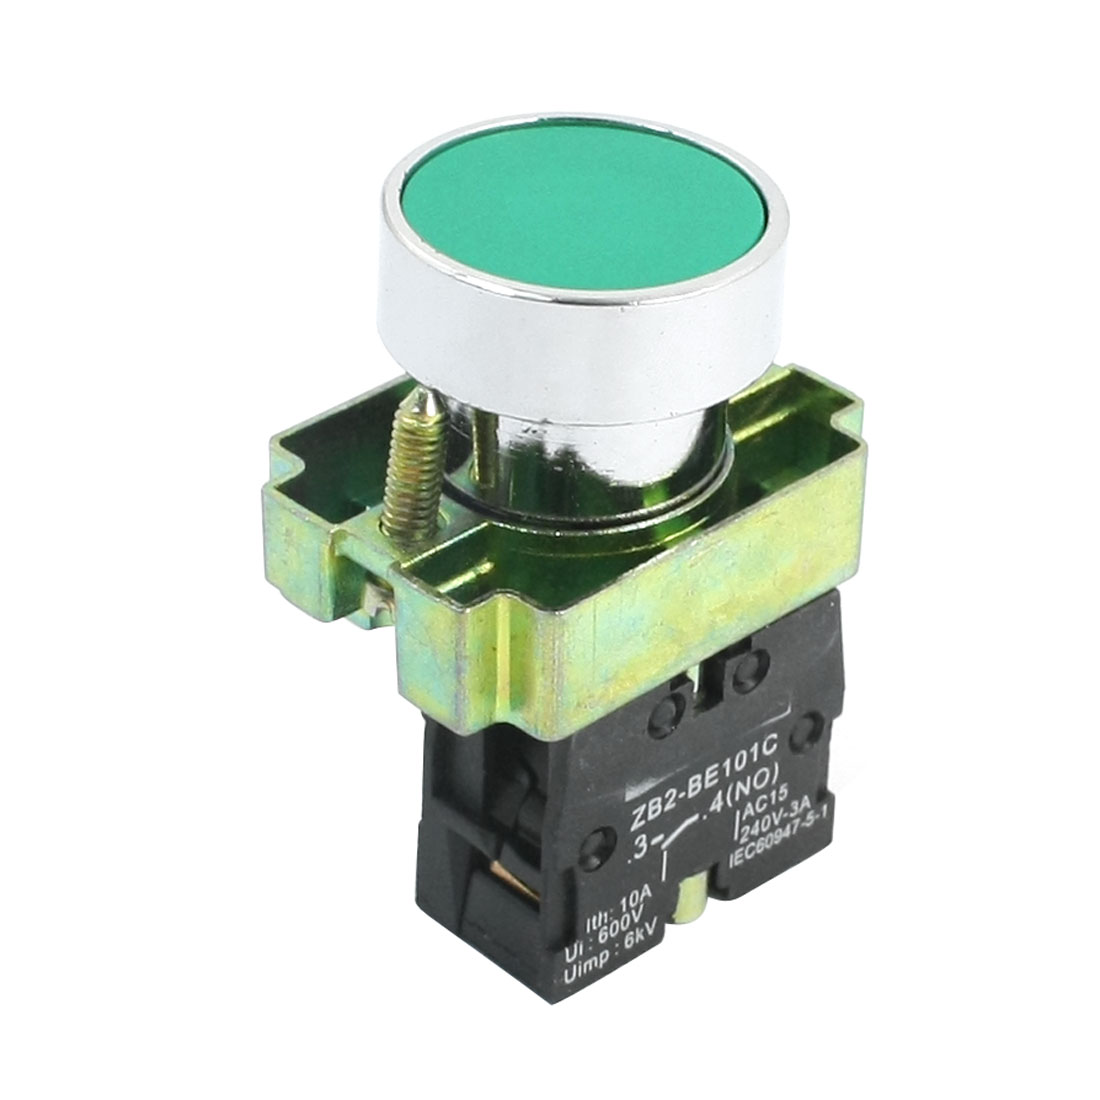 SPST 2 Screw Terminals Green Button Momentary Pushbutton Switch AC 240V 3A